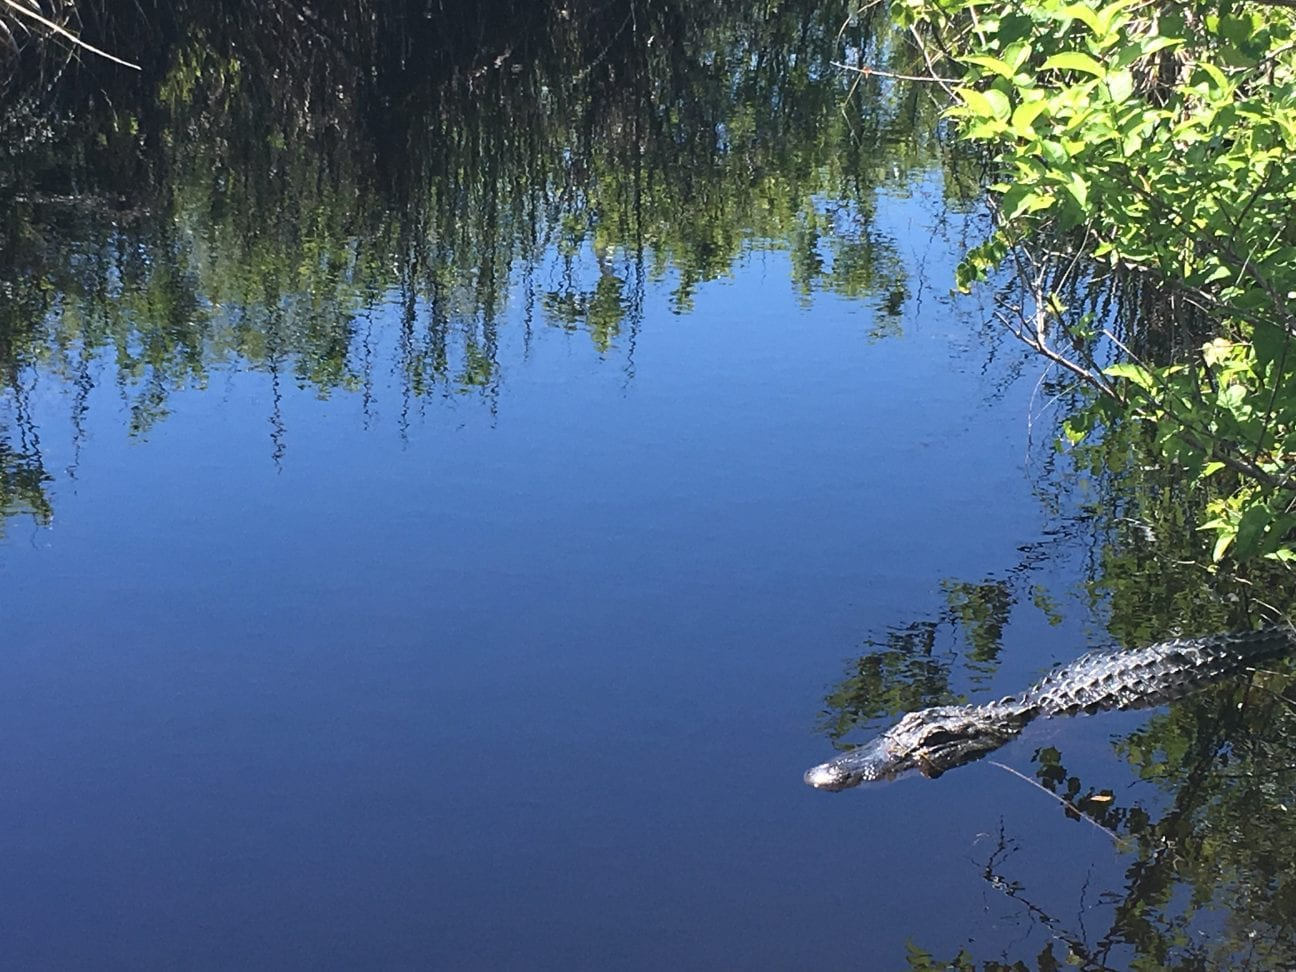 Lefty, the resident gator along the Hugh S. Branyon Backcountry trail in Gulf Shores, Alabama.